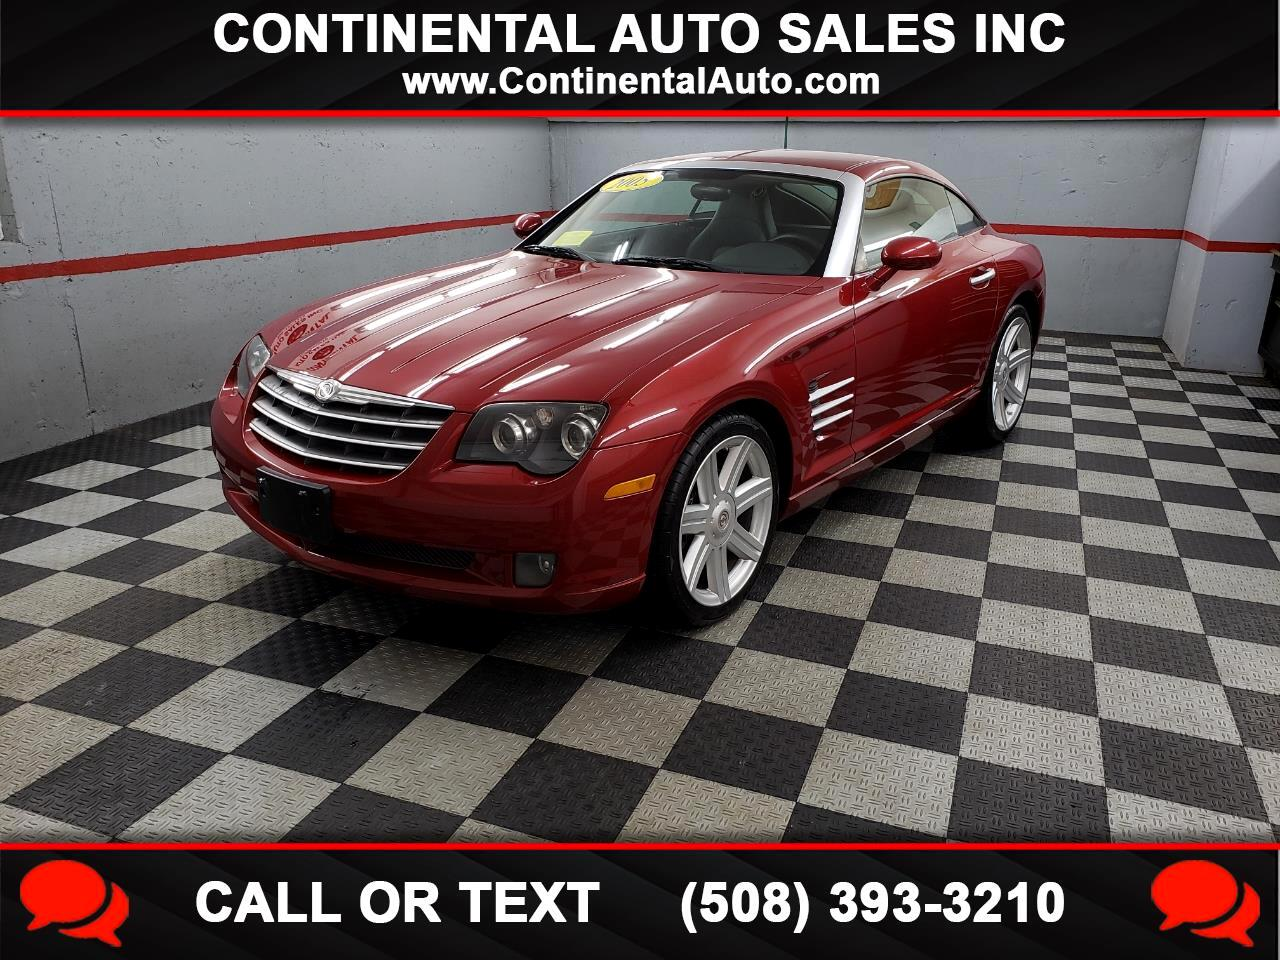 2005 Chrysler Crossfire 2dr Cpe Limited